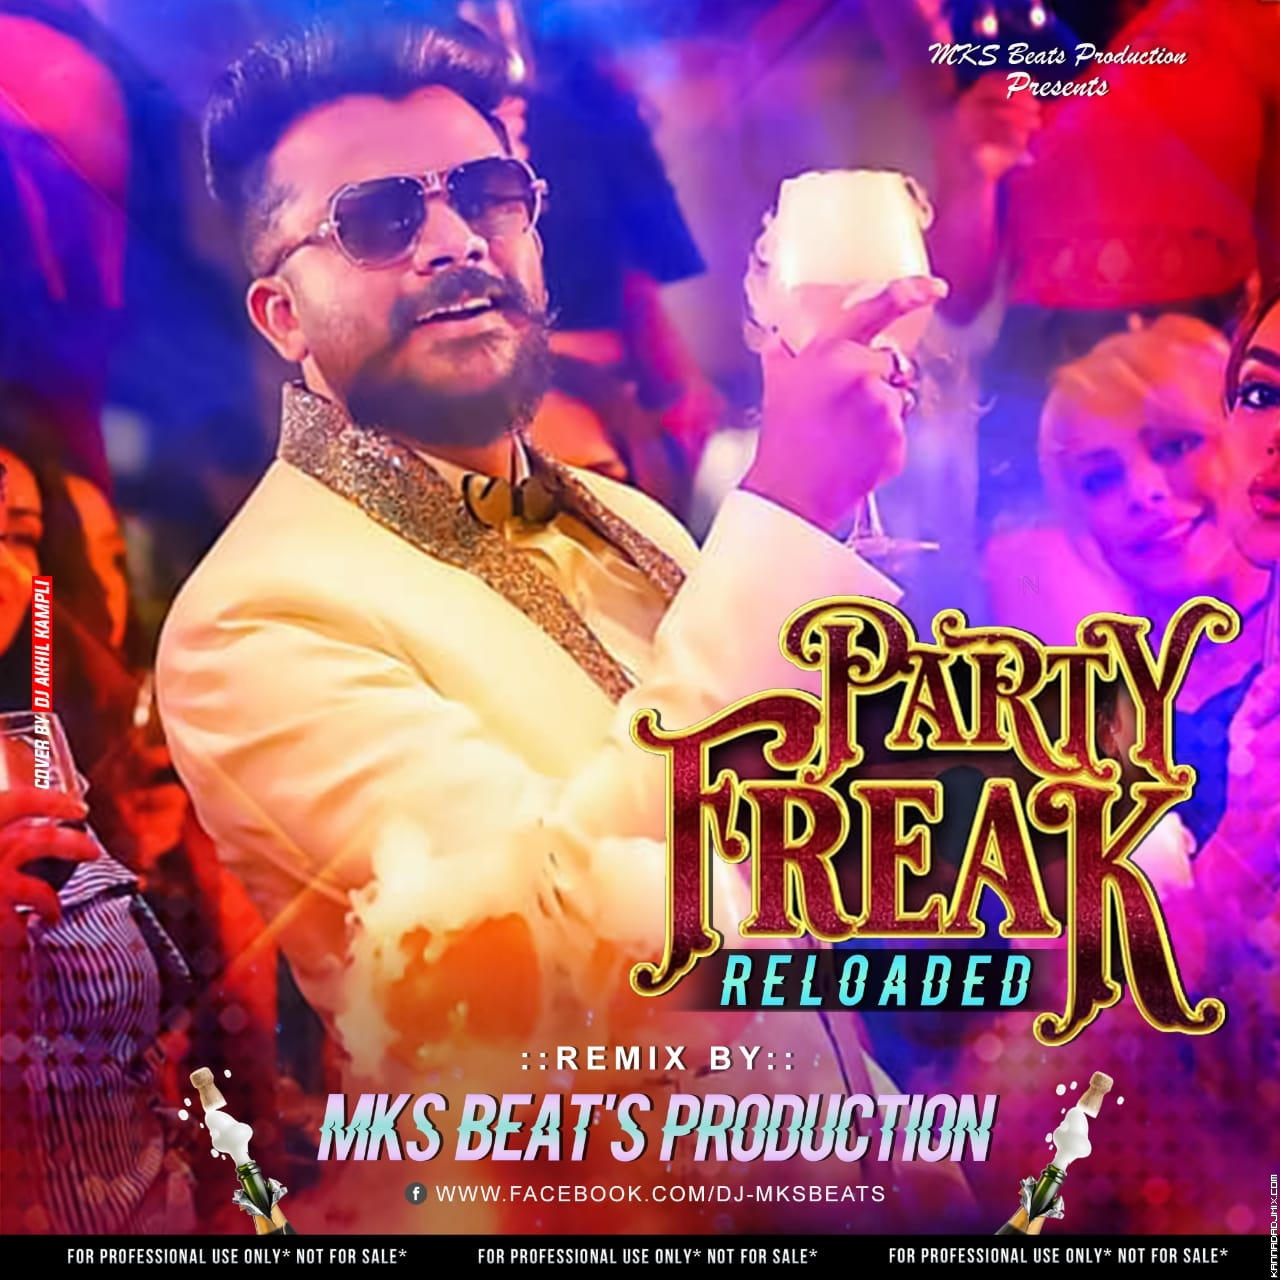 Party-Freak-Reloaded-Remix-Chandan-Shety-Mks-Beats Production.mp3